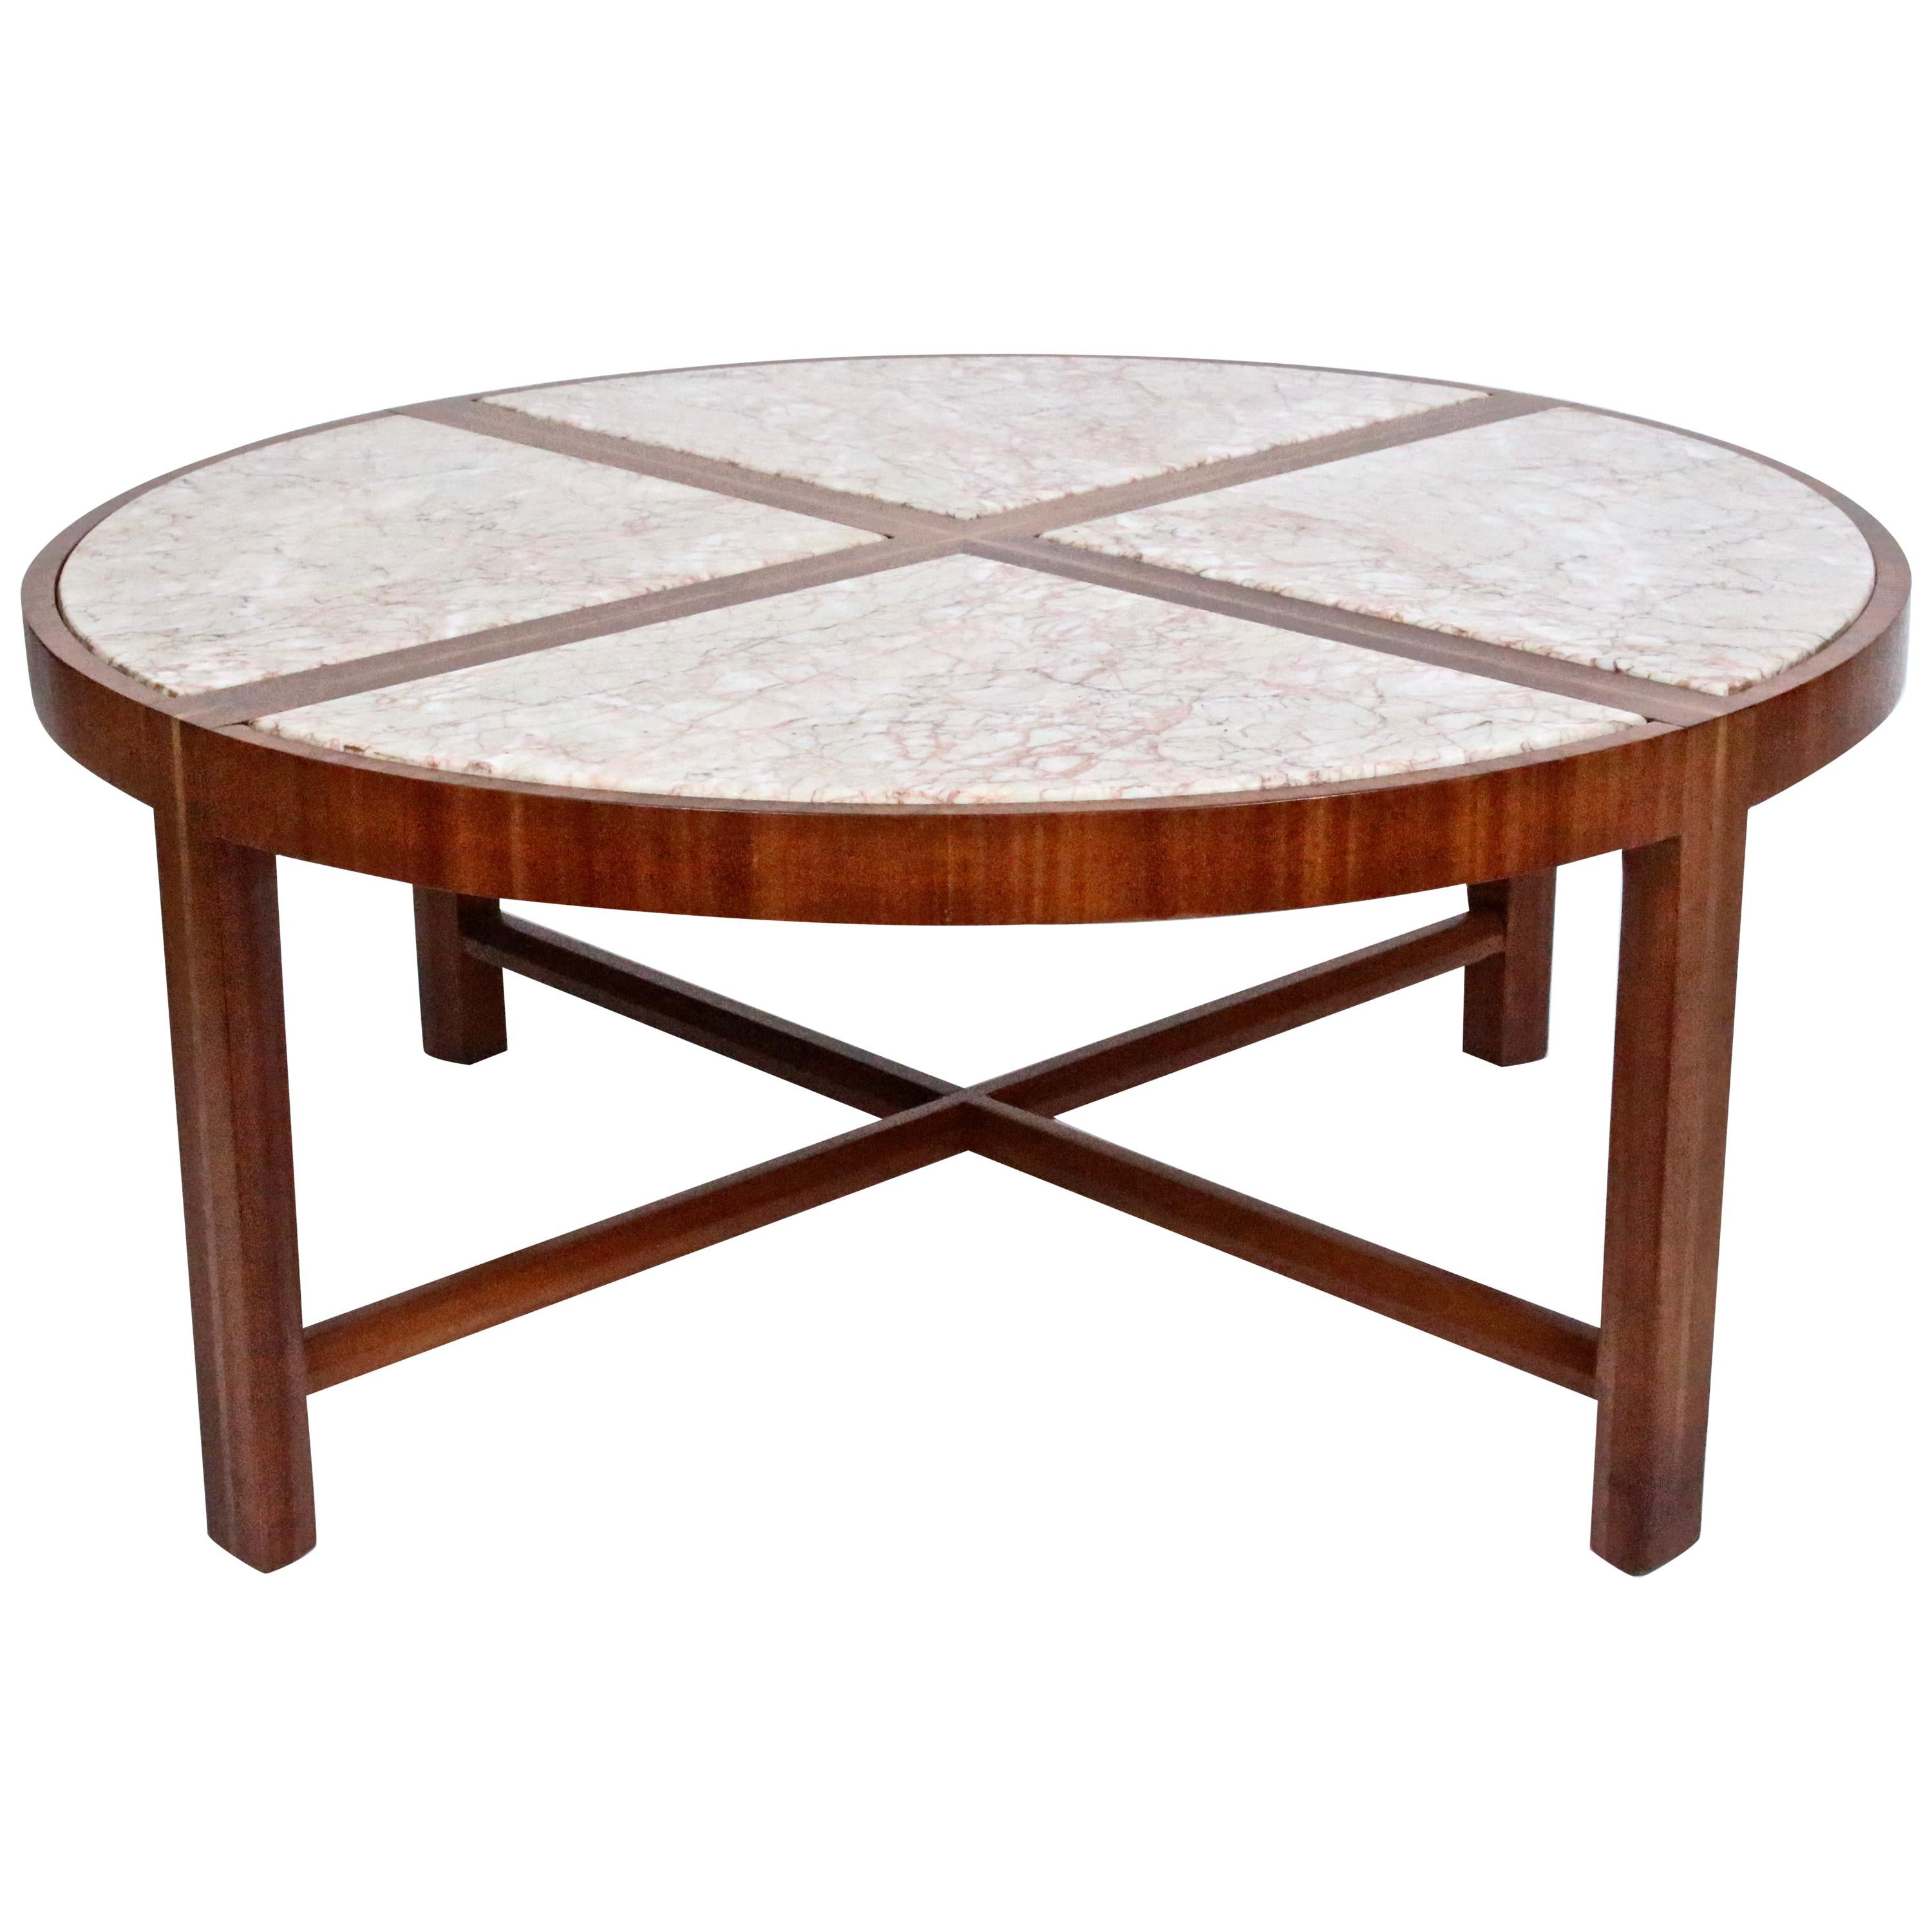 Tommi Parzinger for Charak Modern Mahogany and Marble Coffee Table